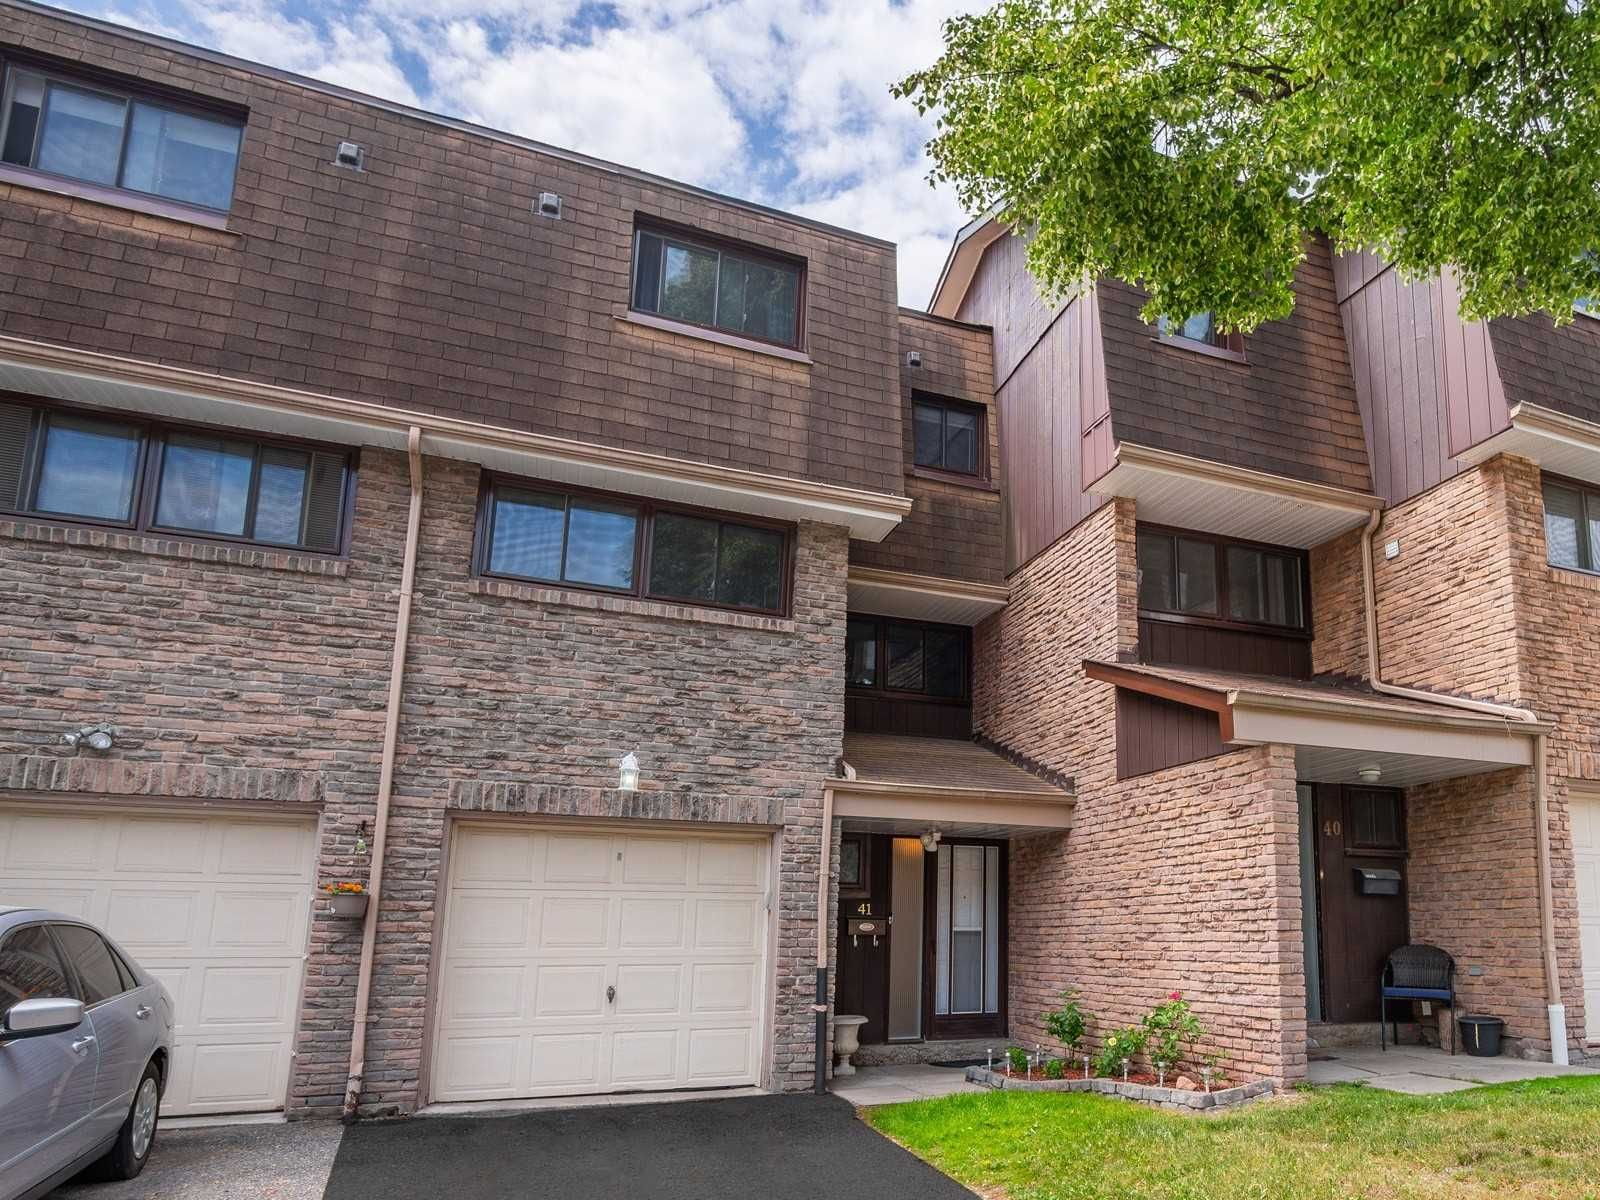 1958 Rosefield Rd, unit 41 for sale in Toronto - image #1